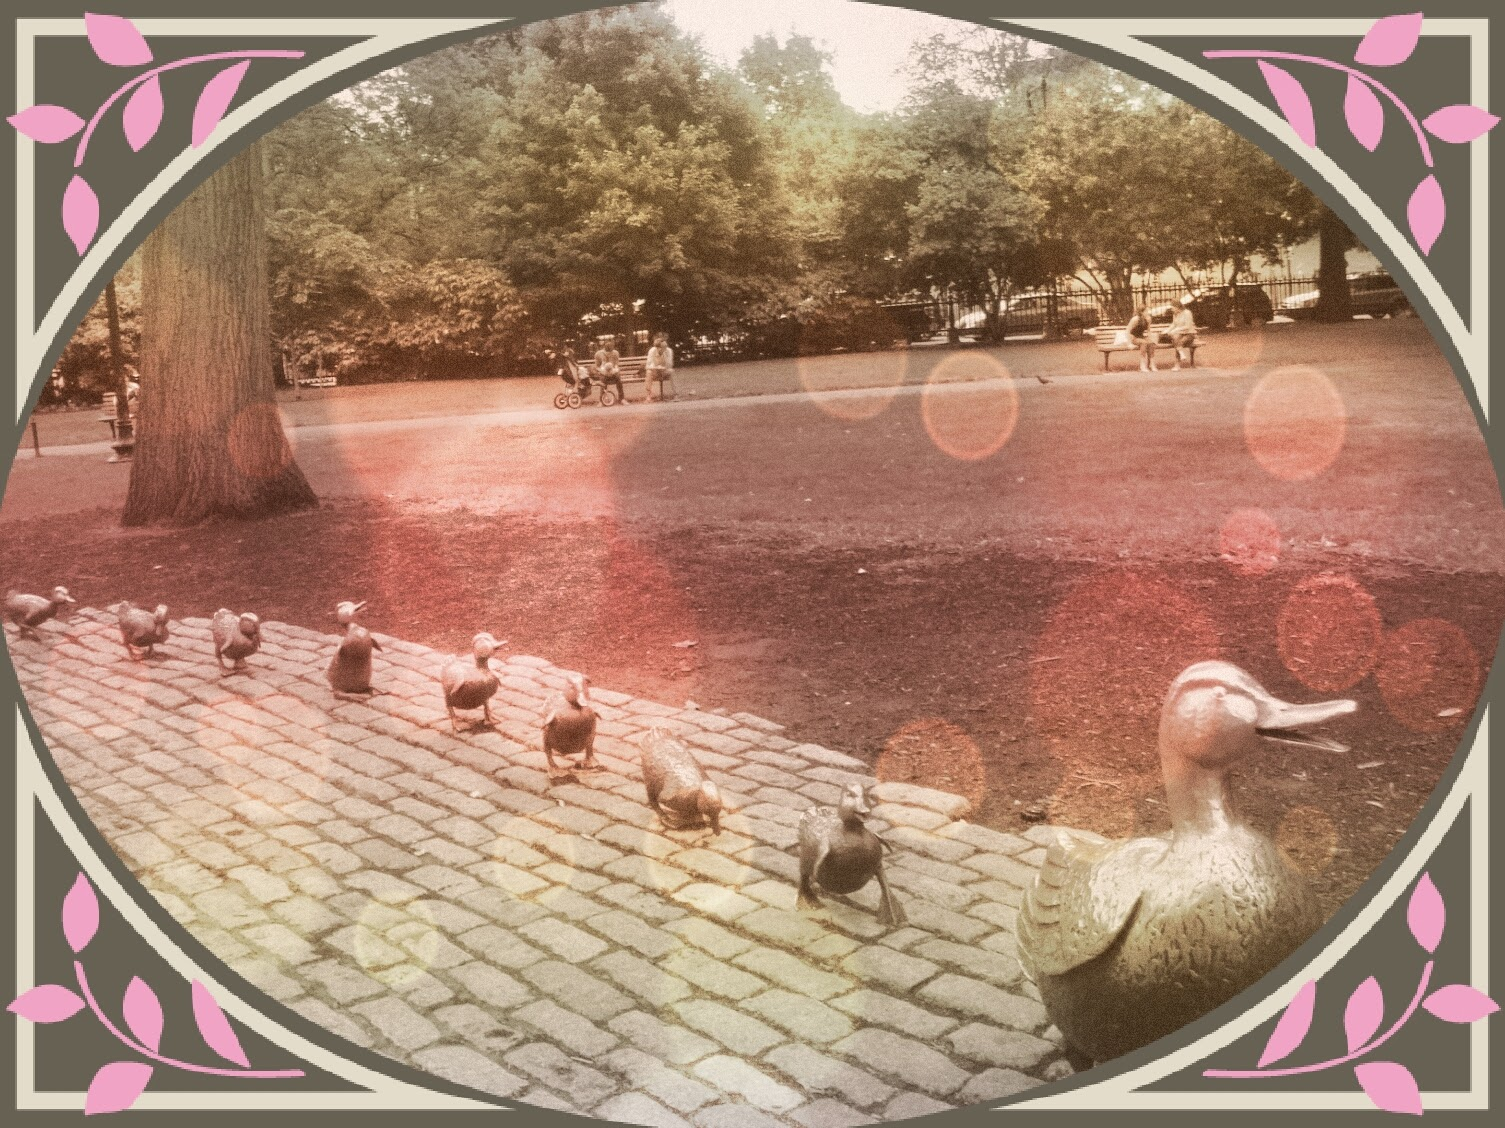 Boston Public Garden - Make Way for the Ducklings